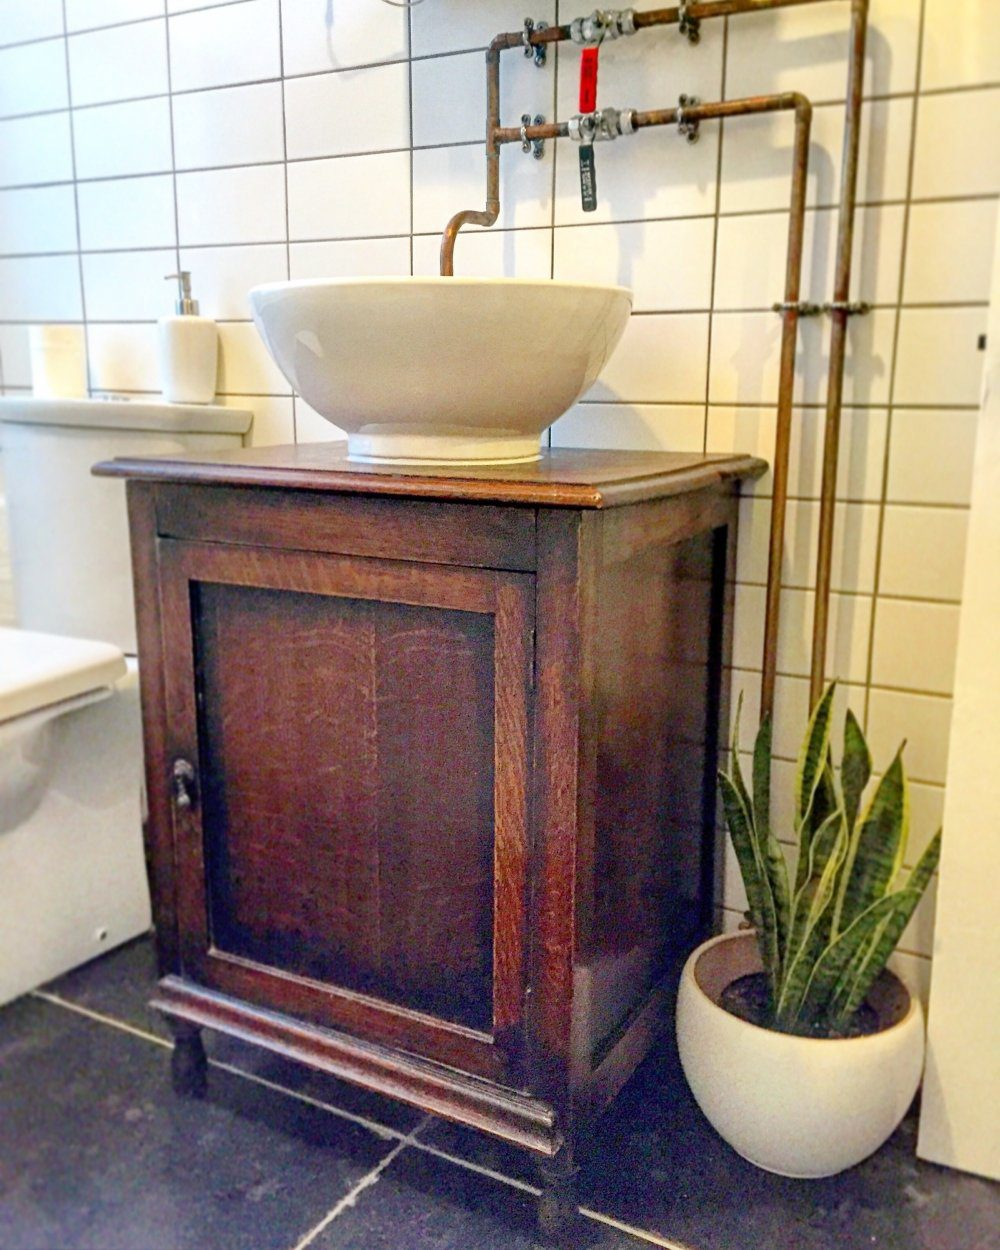 basin installed on reclaimed wooden unit